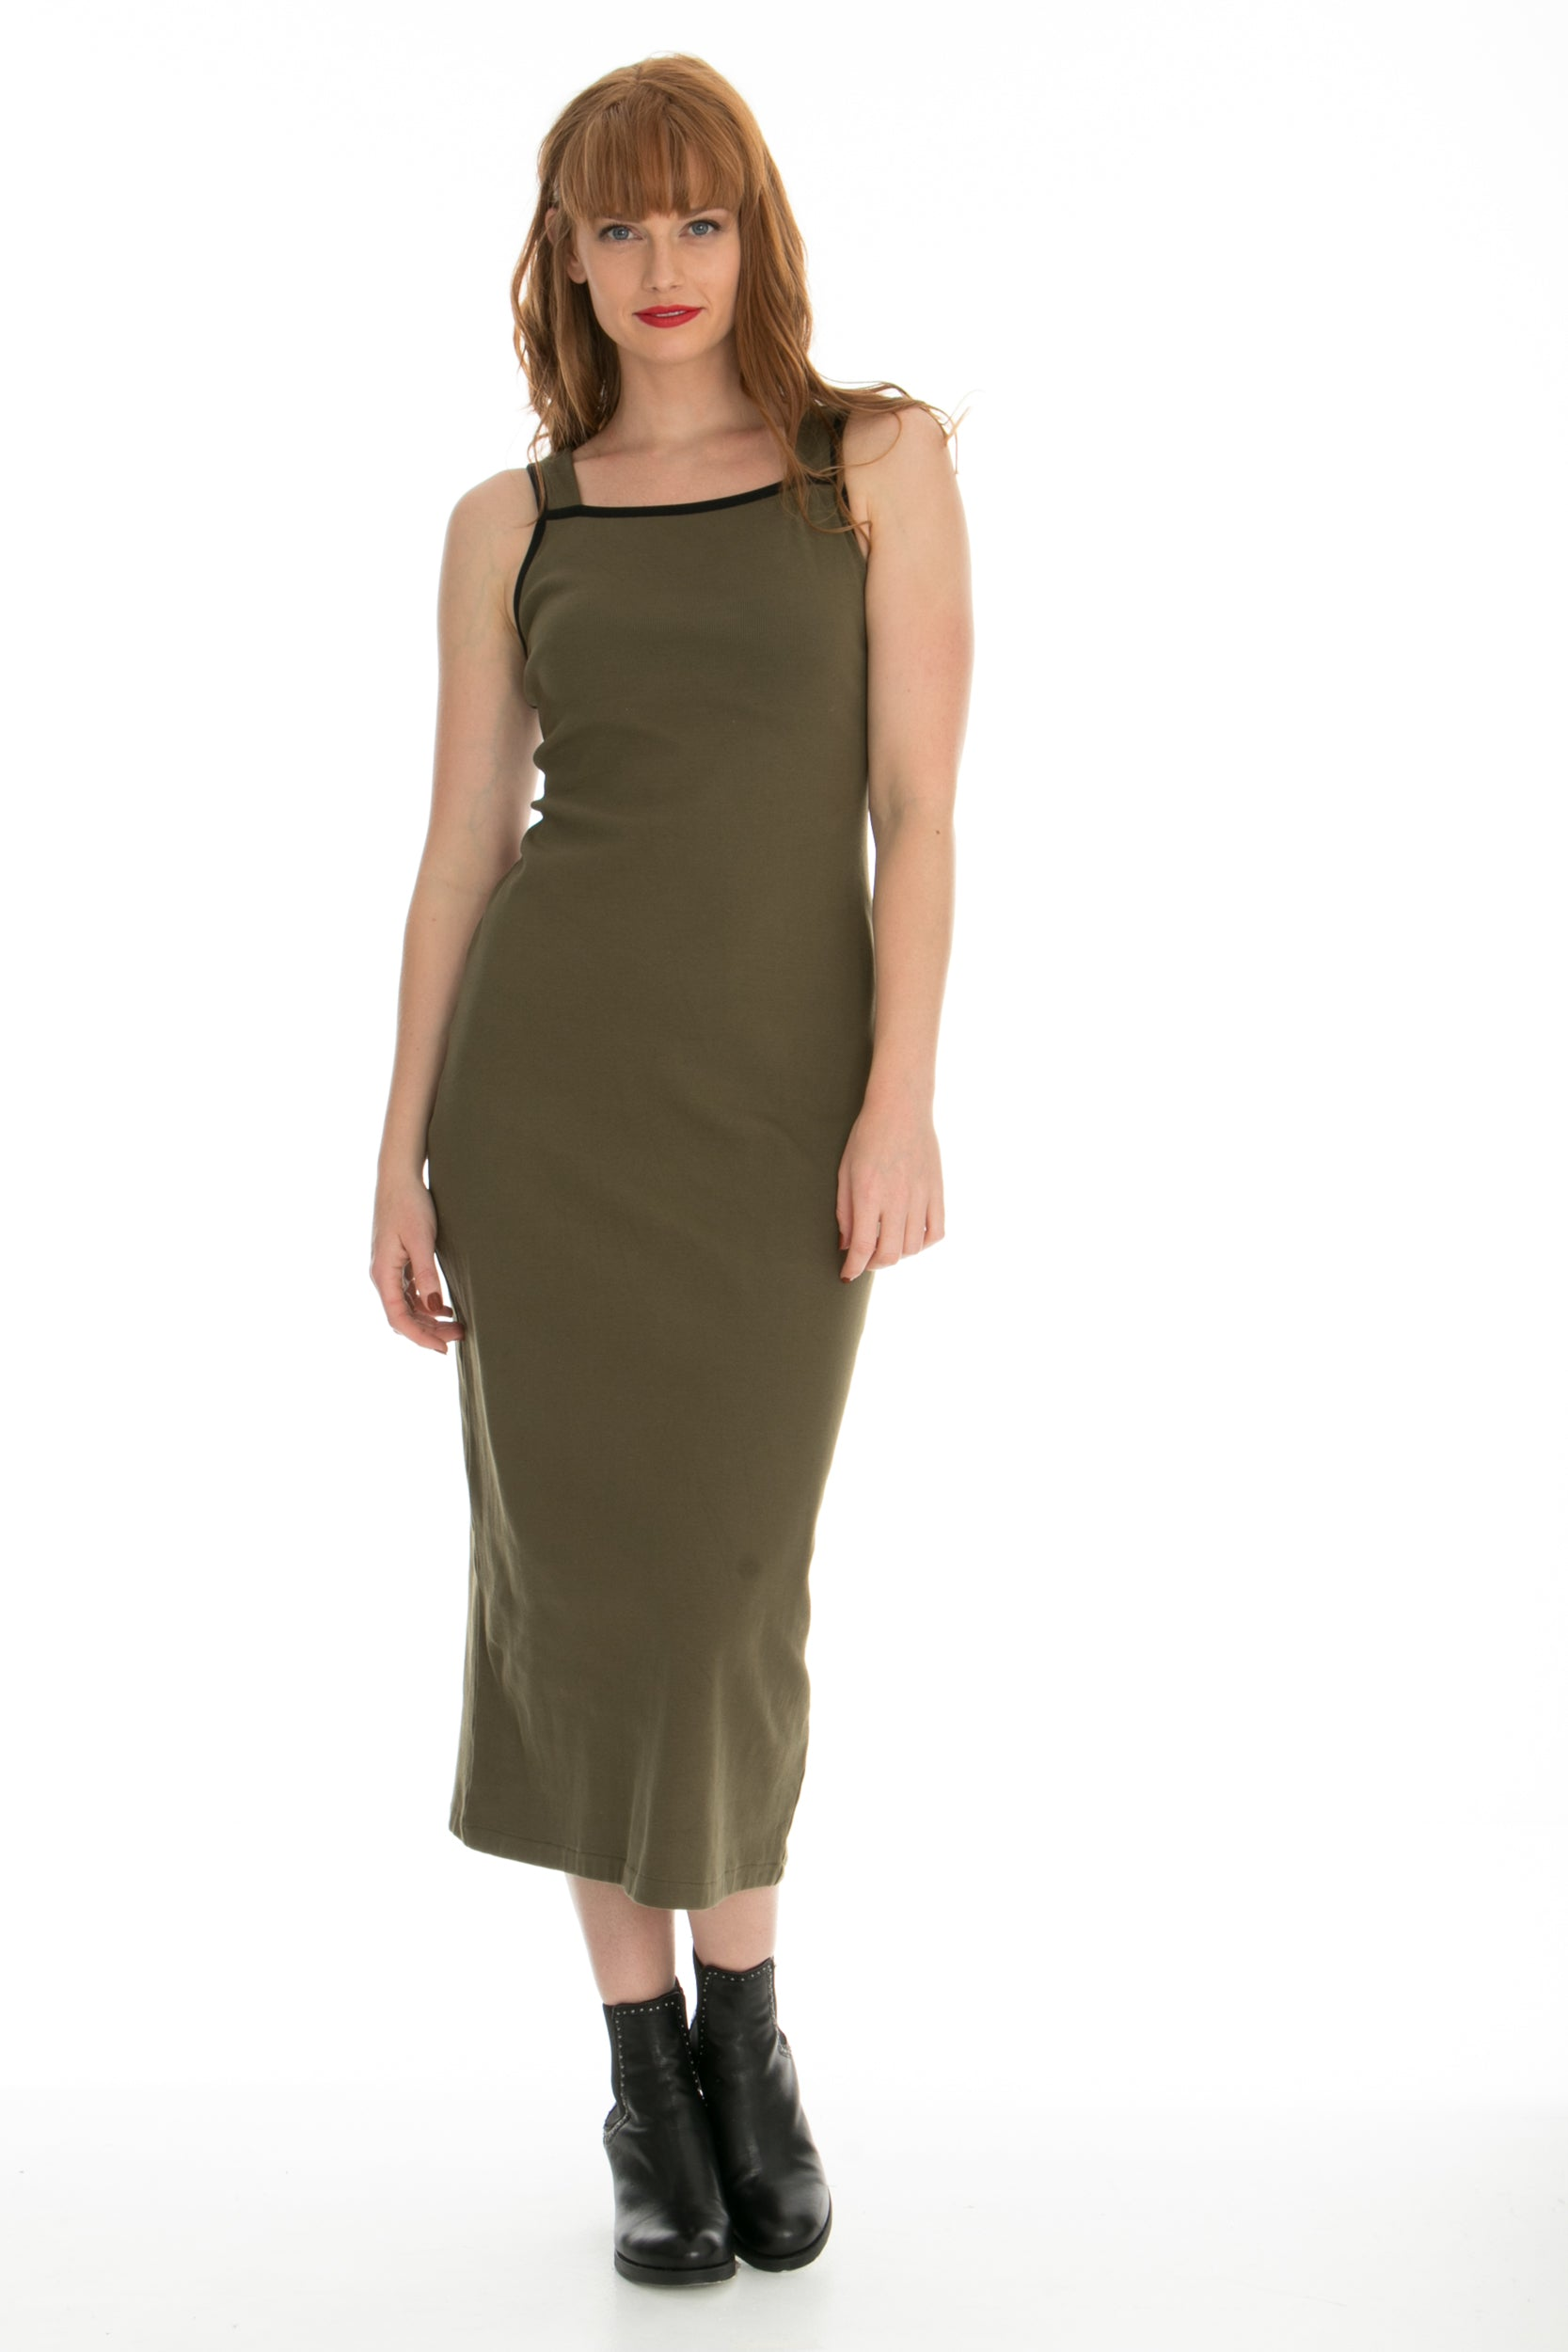 Juna Ripple Dress - Olive